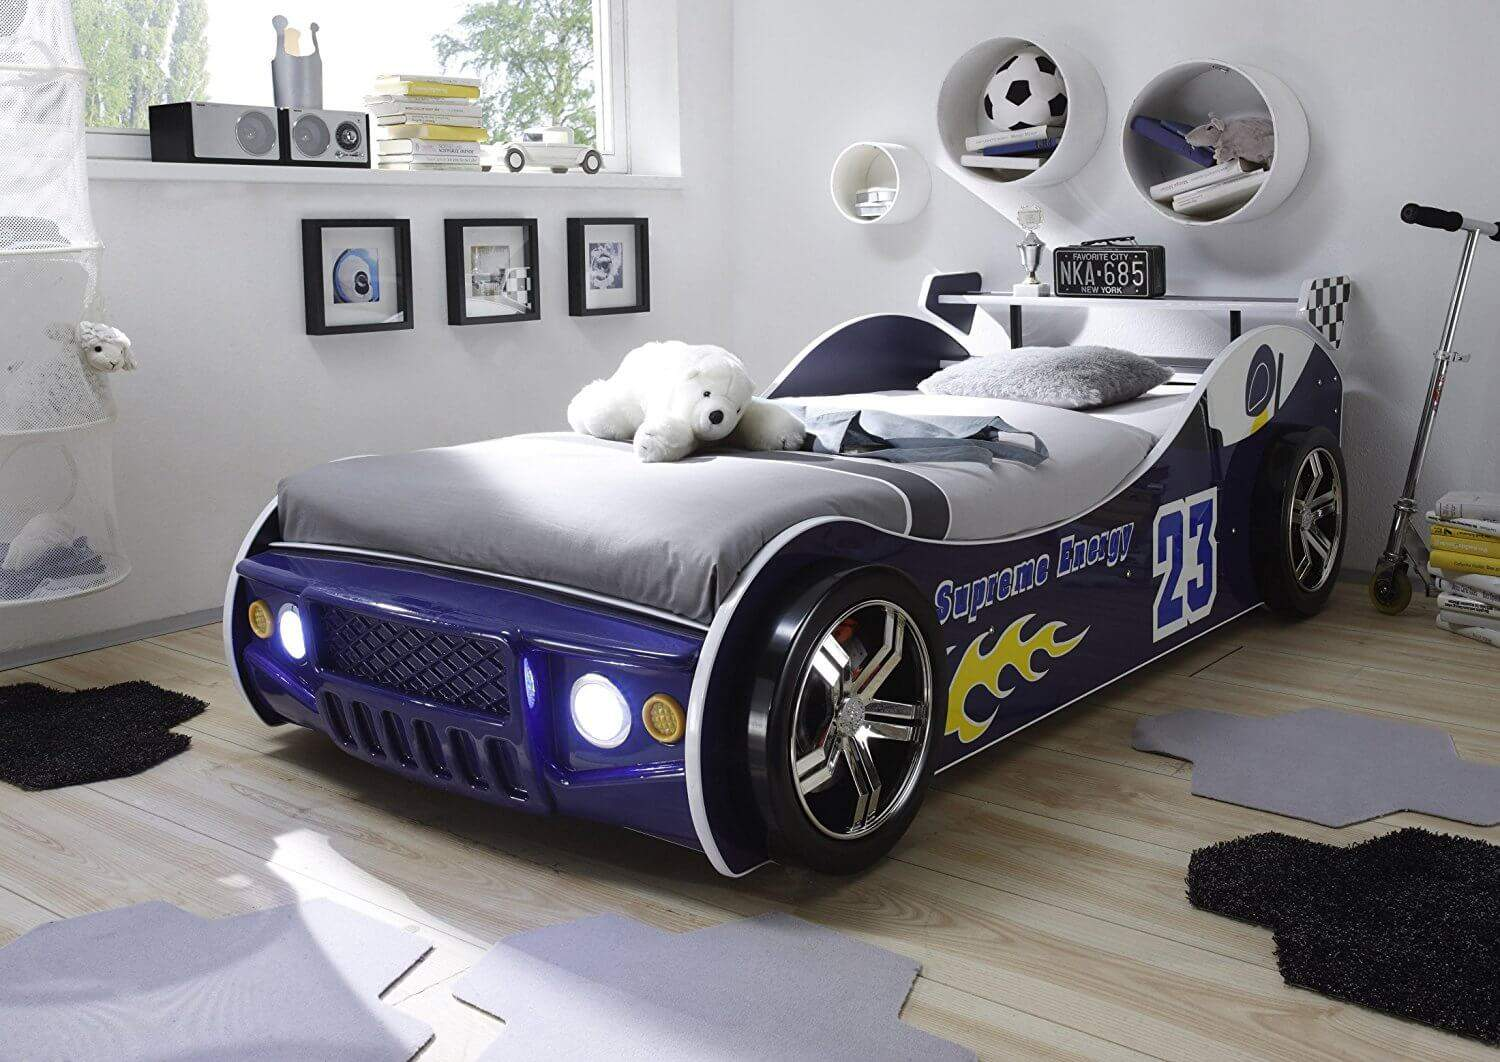 rc car led beleuchtung selber bauen p1010372 hifi forum. Black Bedroom Furniture Sets. Home Design Ideas